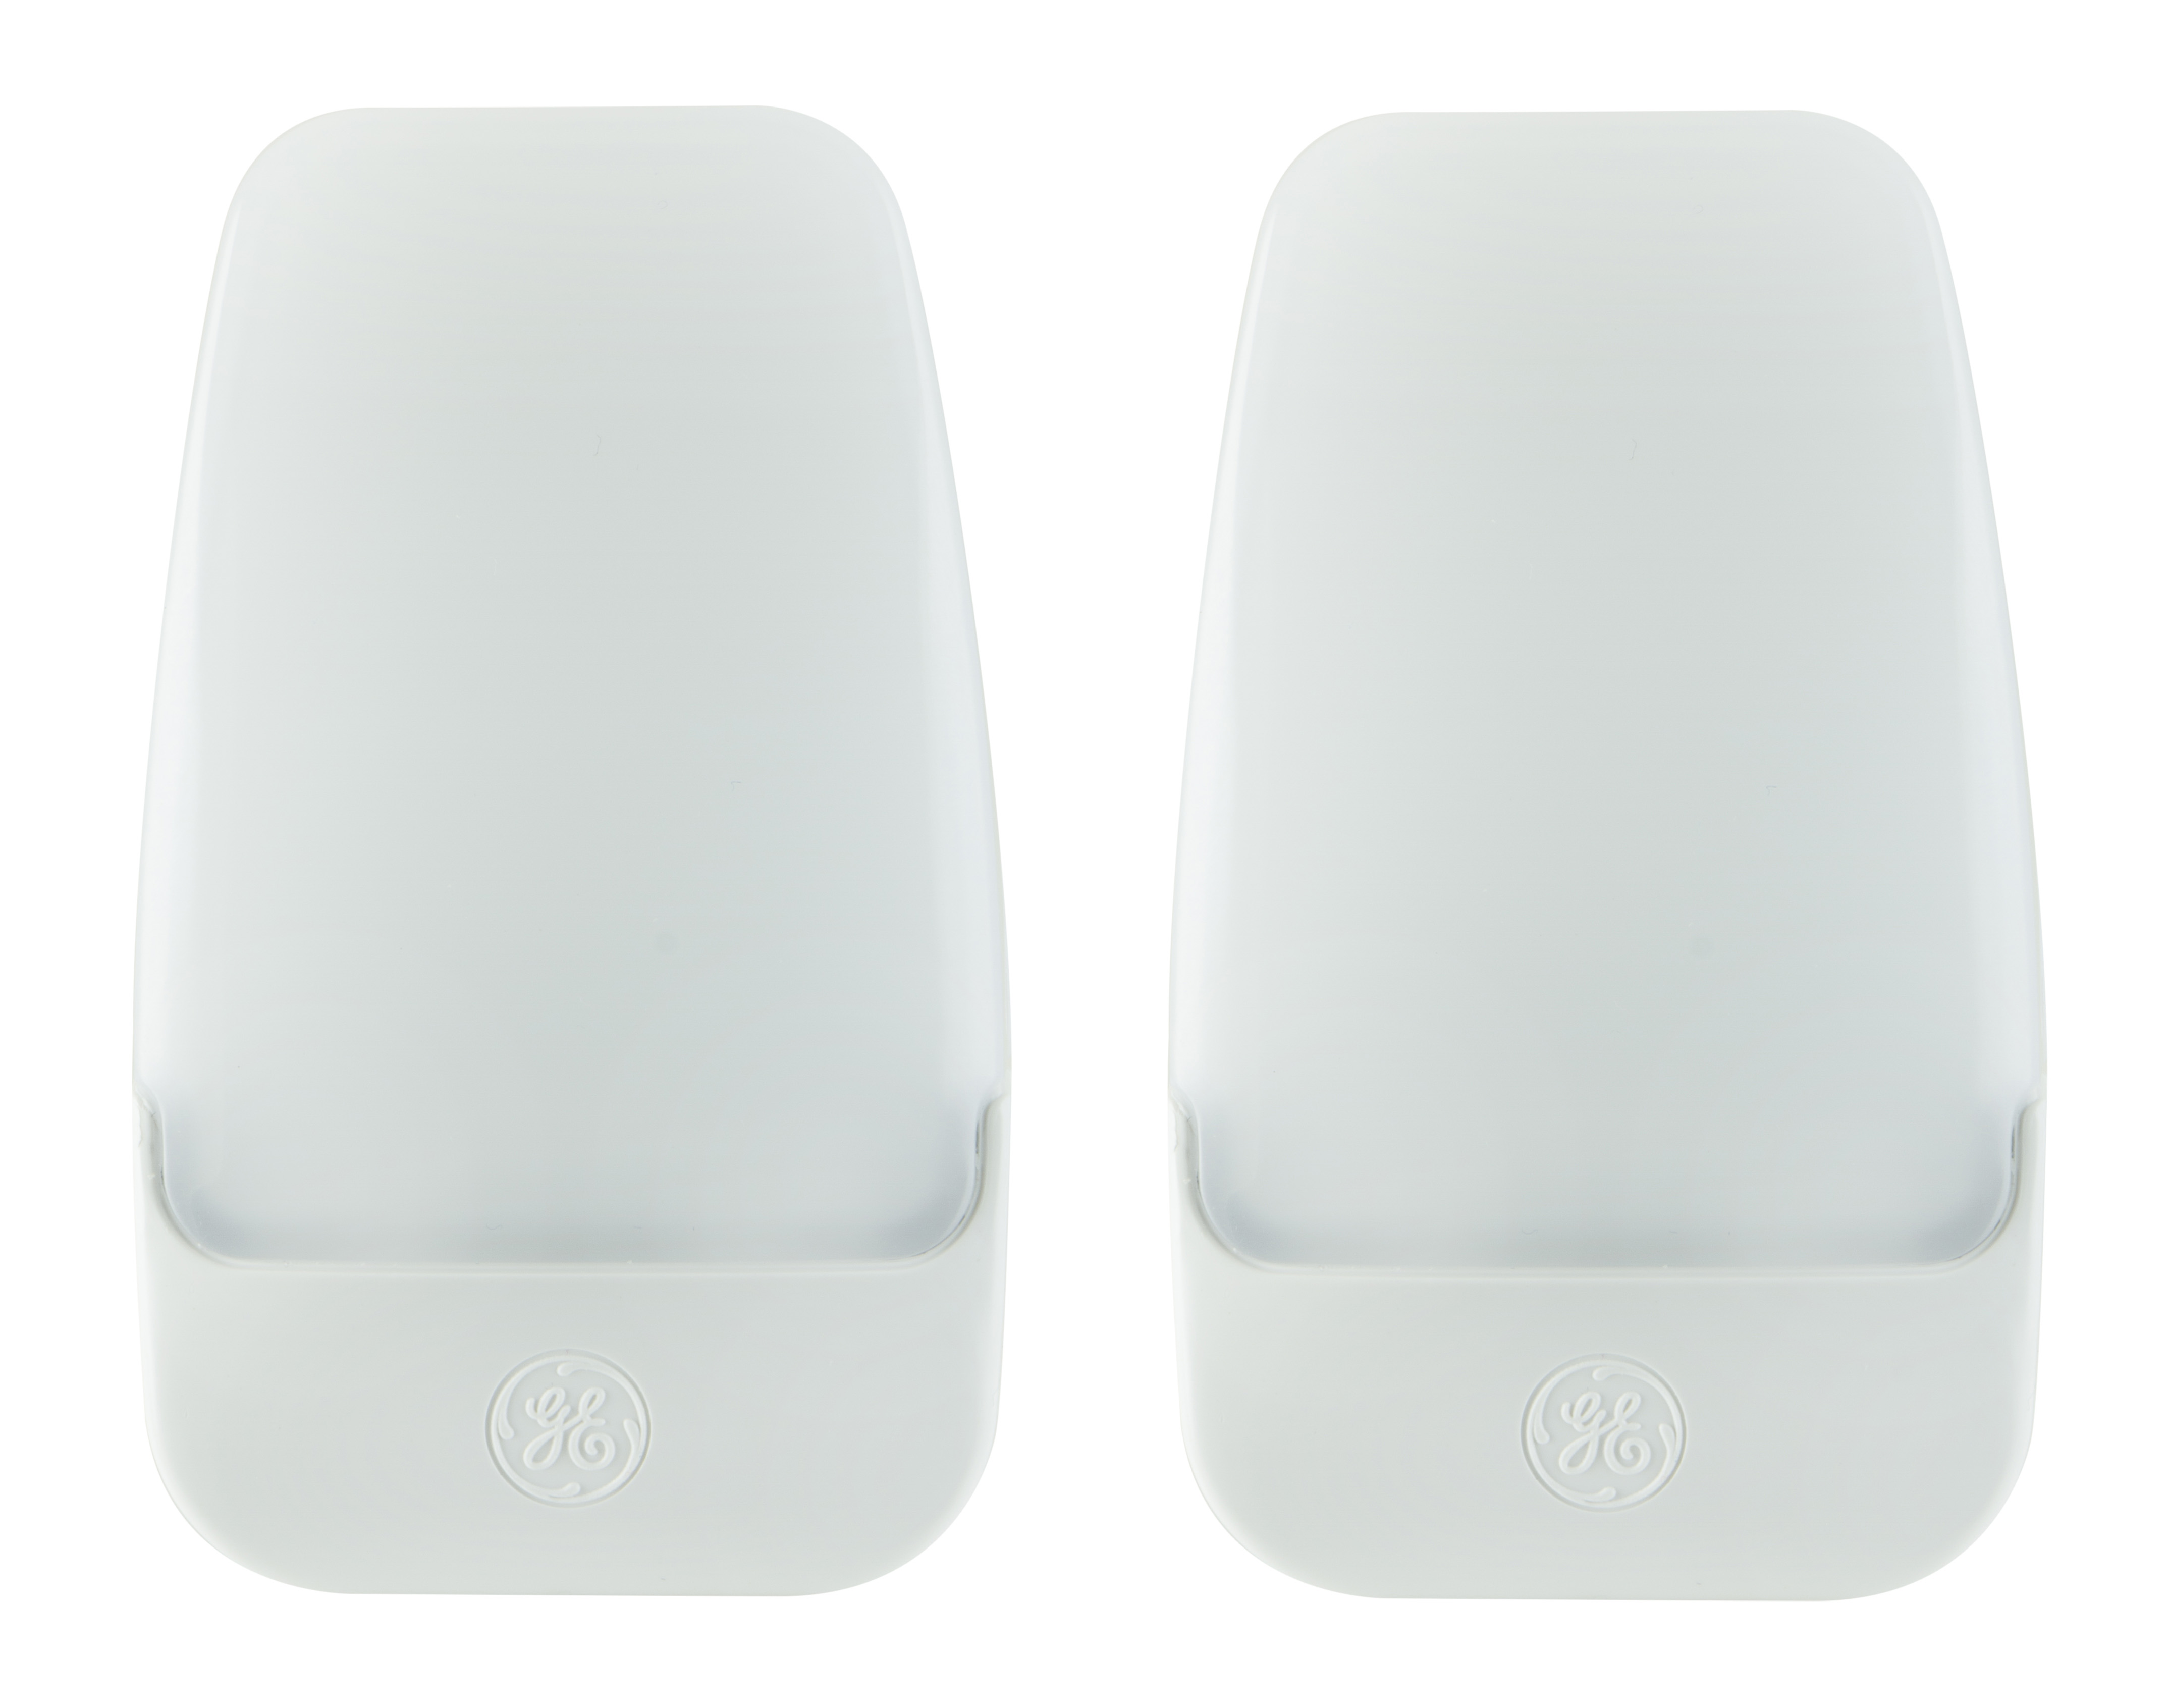 GE Automatic LED Plug-In Night Light, 2-Pack, Contempo Design, White, 30966 by Jasco Products Company